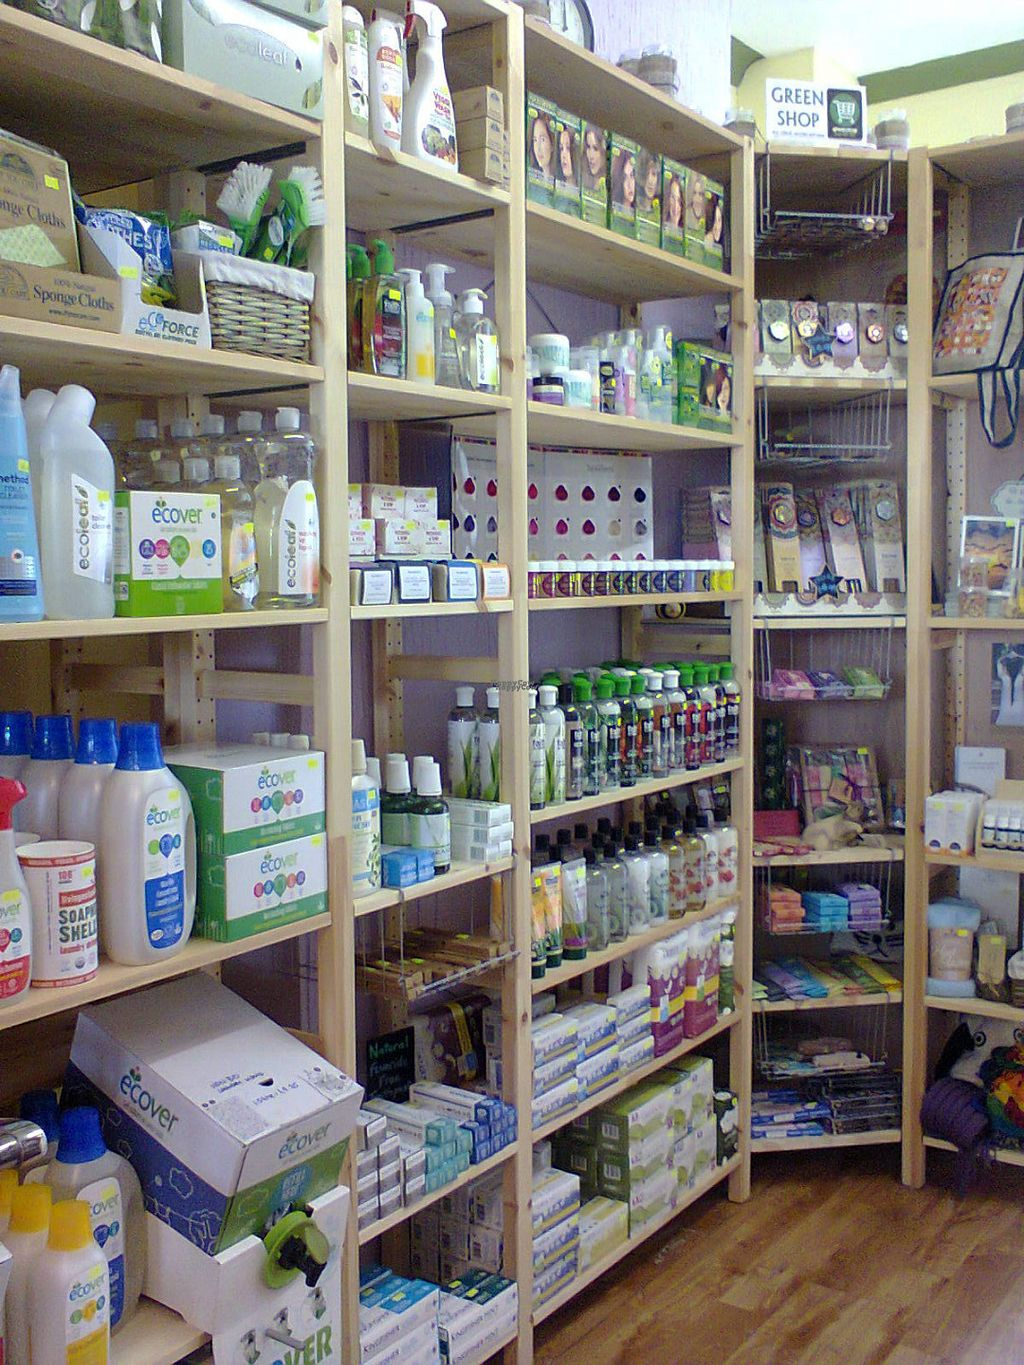 """Photo of CLOSED: Hornett Wholefoods  by <a href=""""/members/profile/JonathanHornett"""">JonathanHornett</a> <br/>Our Green Shop - ethical, eco, recycled and refill <br/> September 24, 2016  - <a href='/contact/abuse/image/64000/177714'>Report</a>"""